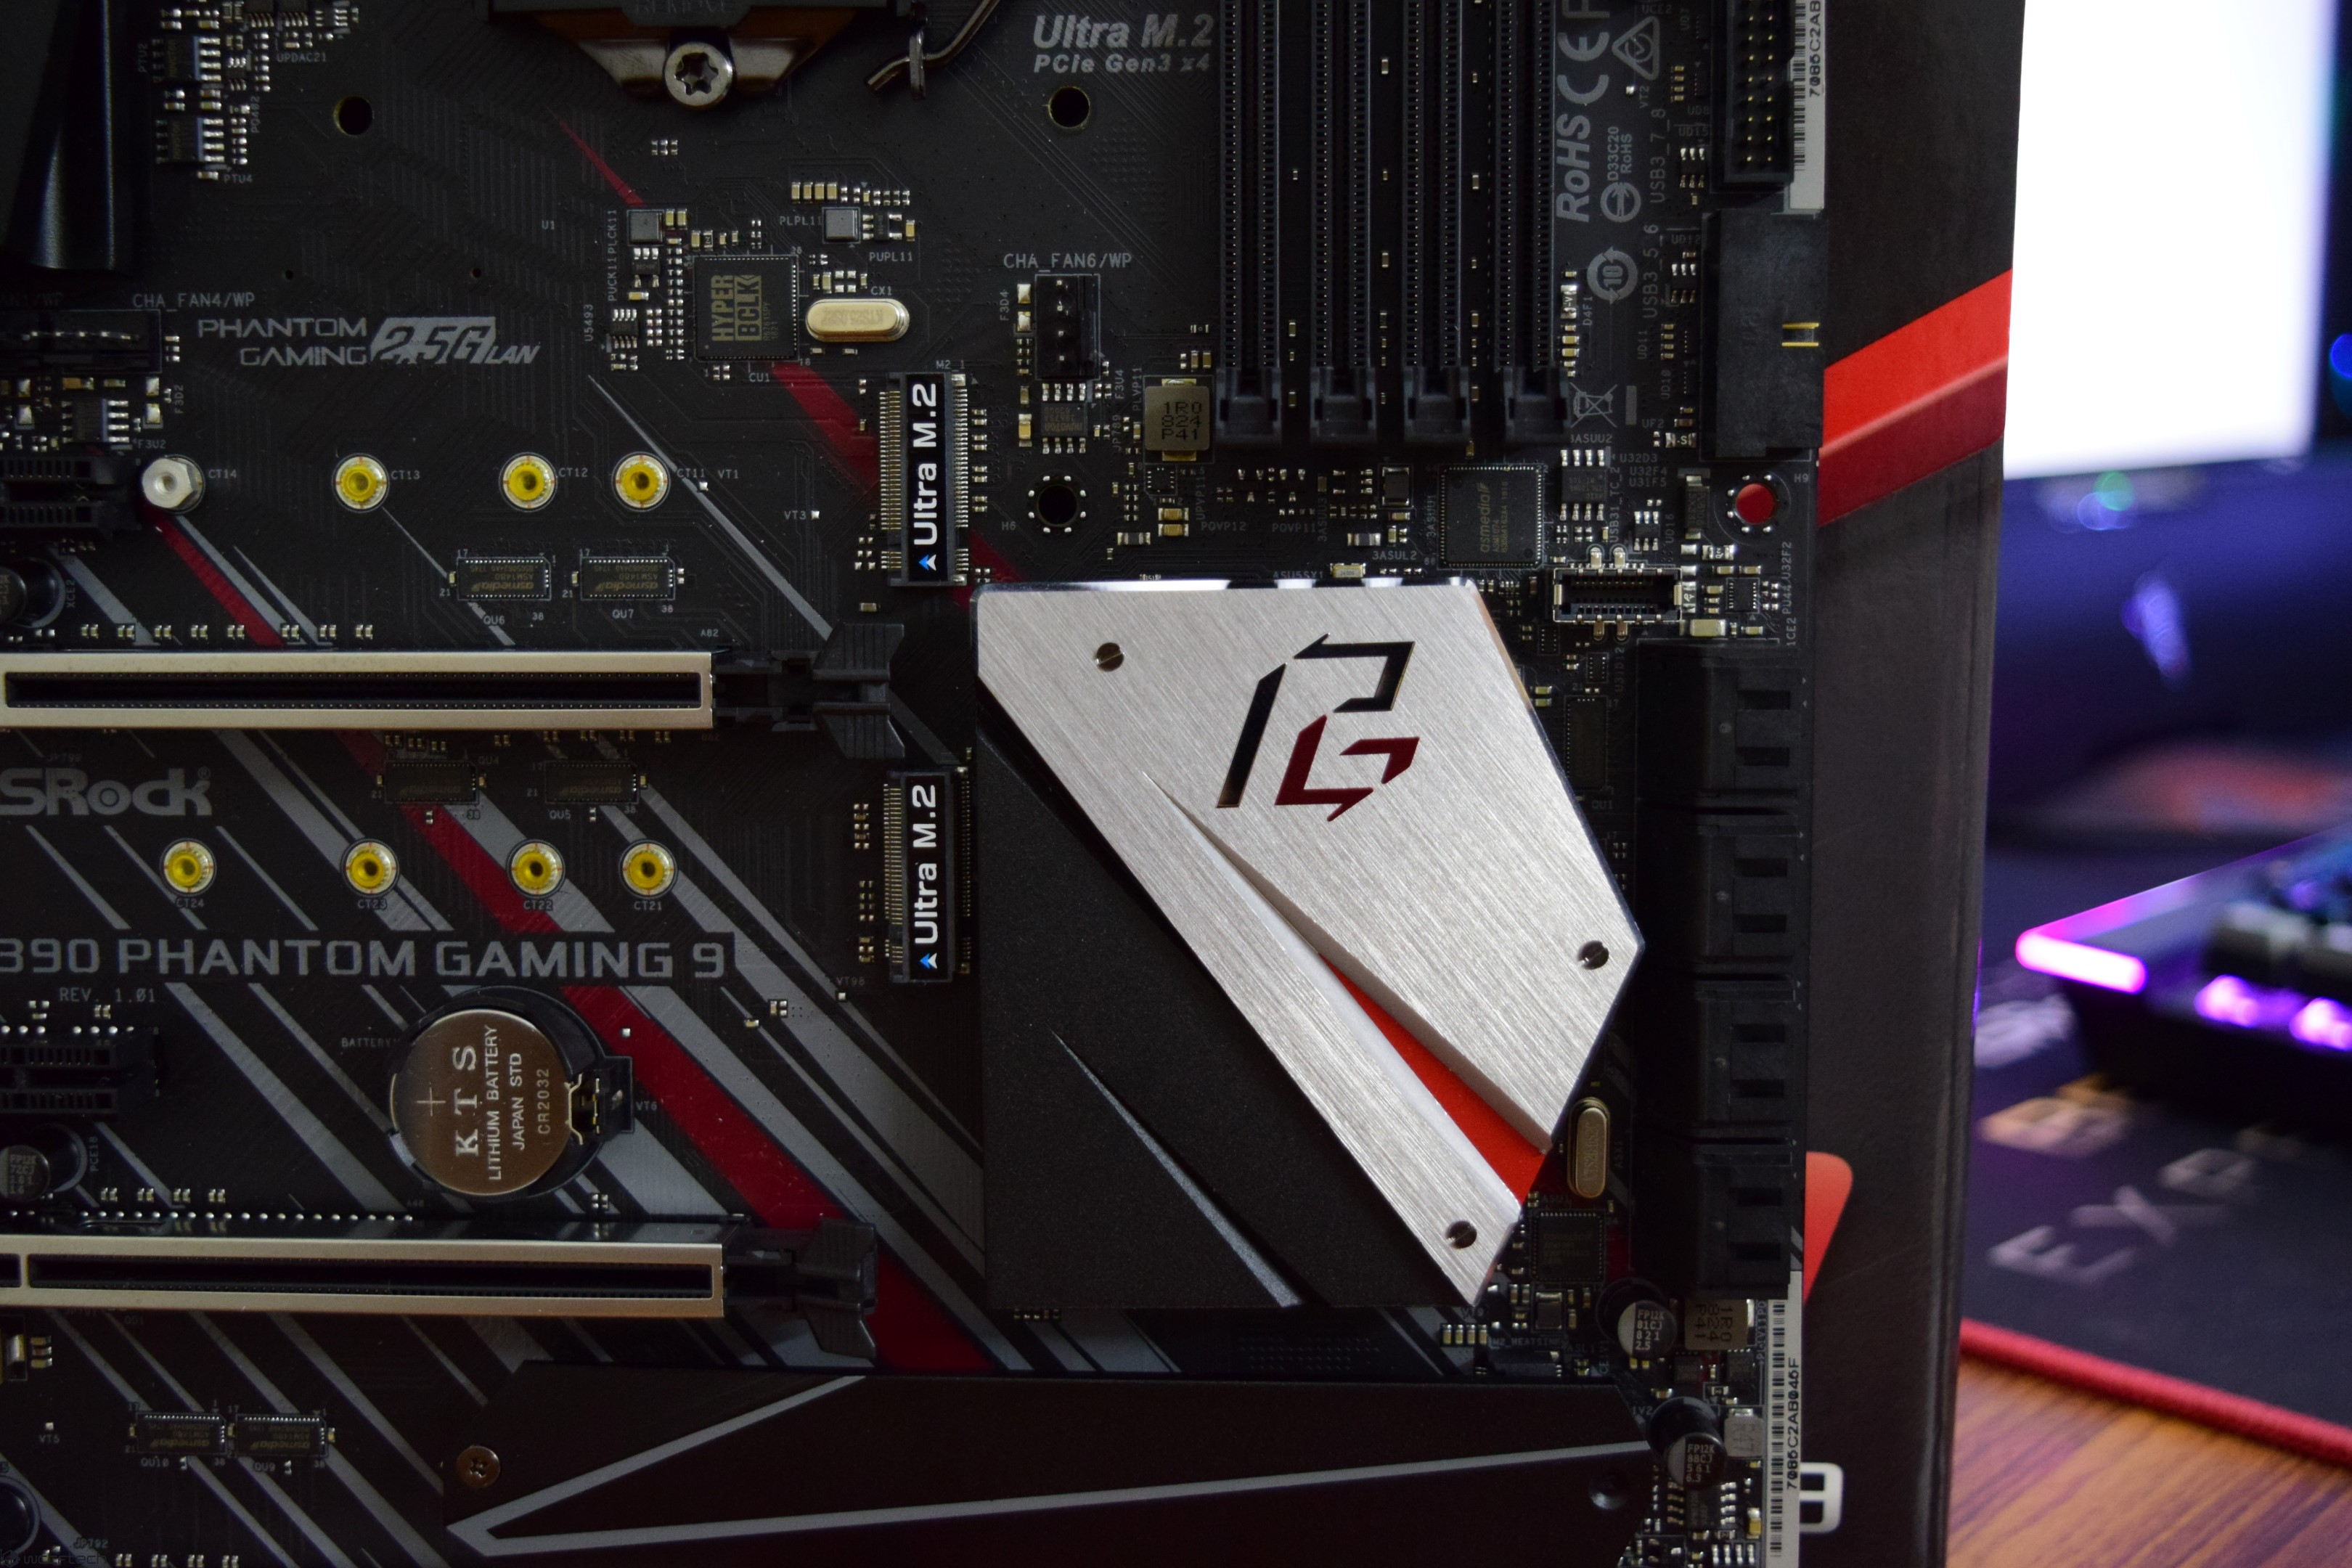 ASRock Z390 Phantom Gaming 9 Motherboard Review